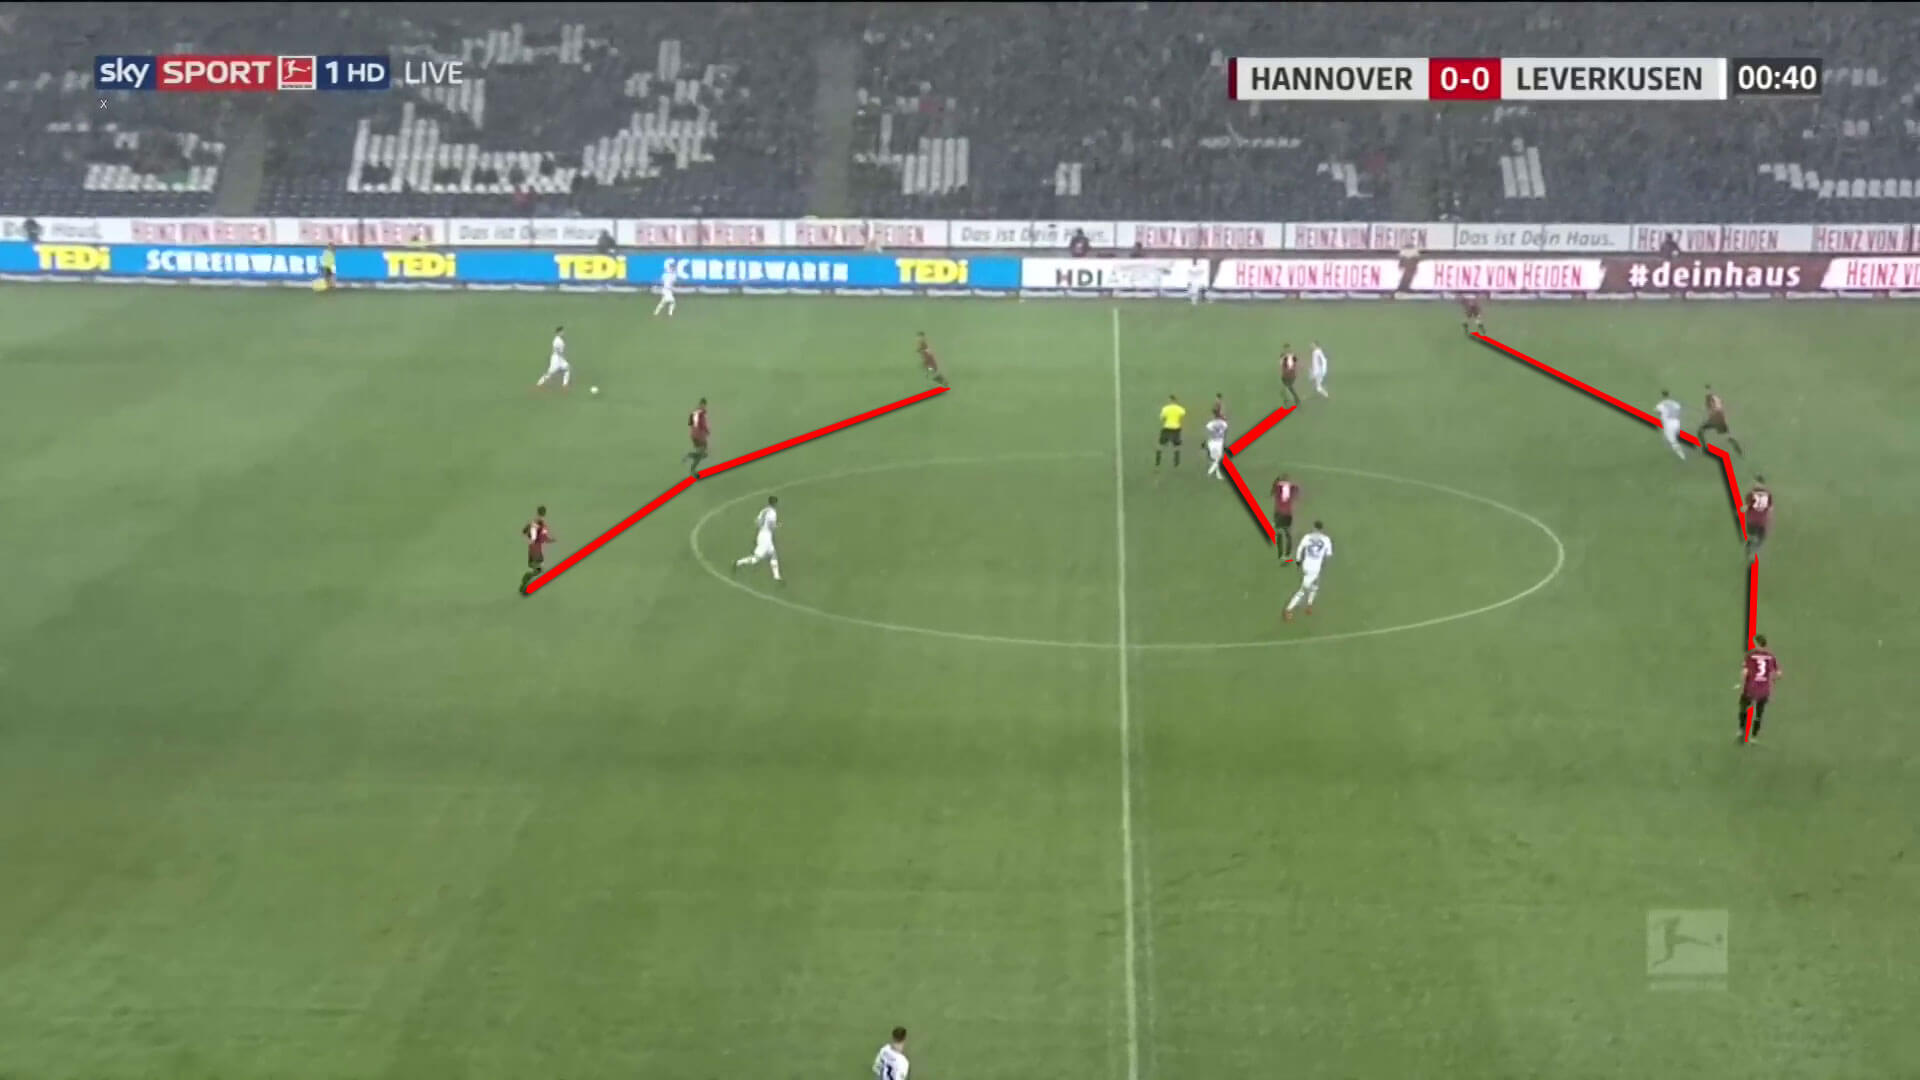 Hannover Leverkusen Bundesliga Tactical Analysis